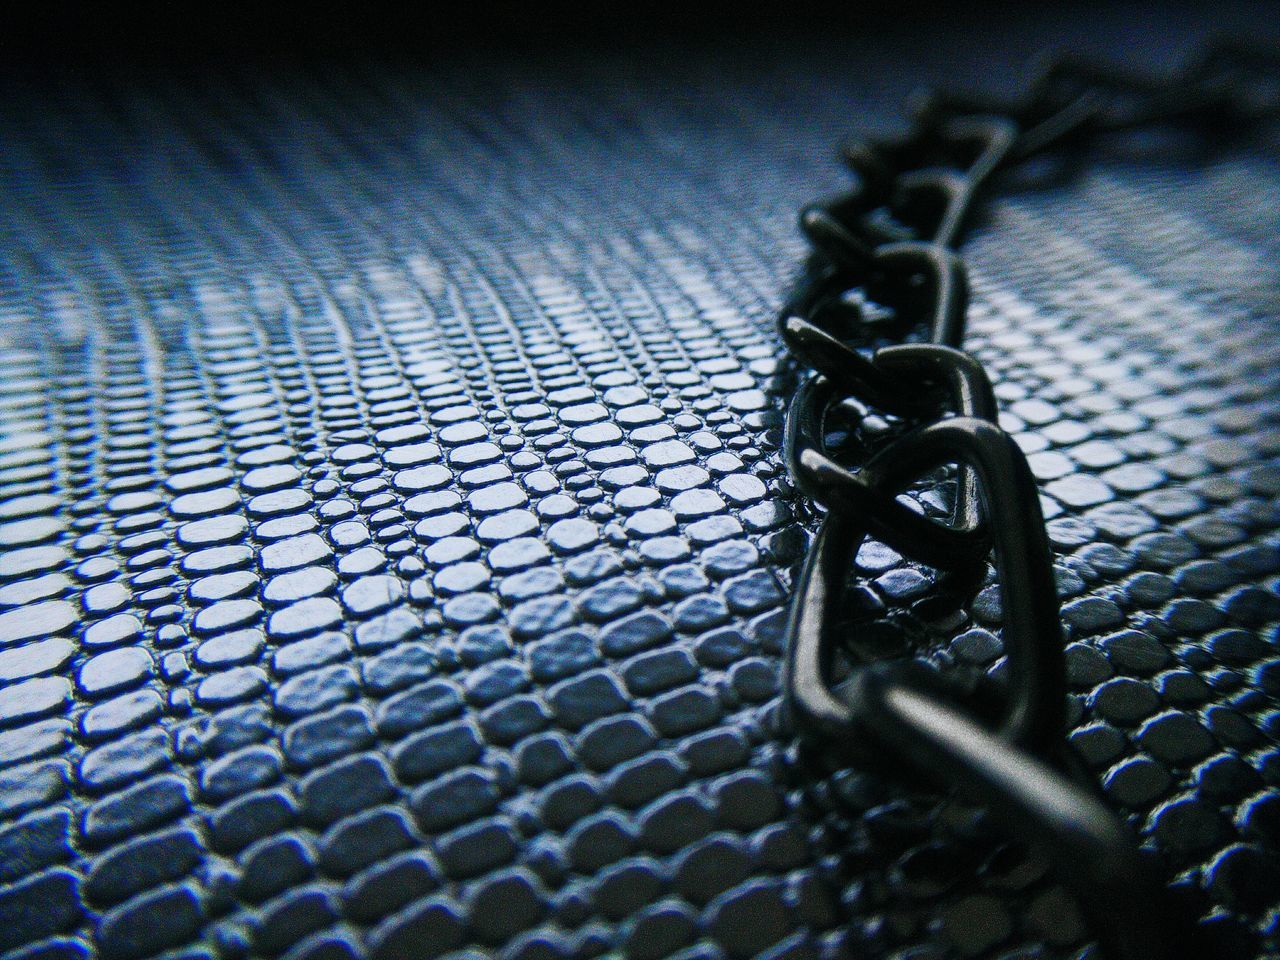 No People Macro_captures Macro Close-up Macro Photography EyeEm Best Shots EyeEmBestPics EyeEm Gallery Closeup Backgrounds Chain Chainlink Link Linked Linked Chains Metal Blue Steal Lieblingsteil Lieblingsteil Oneplusone